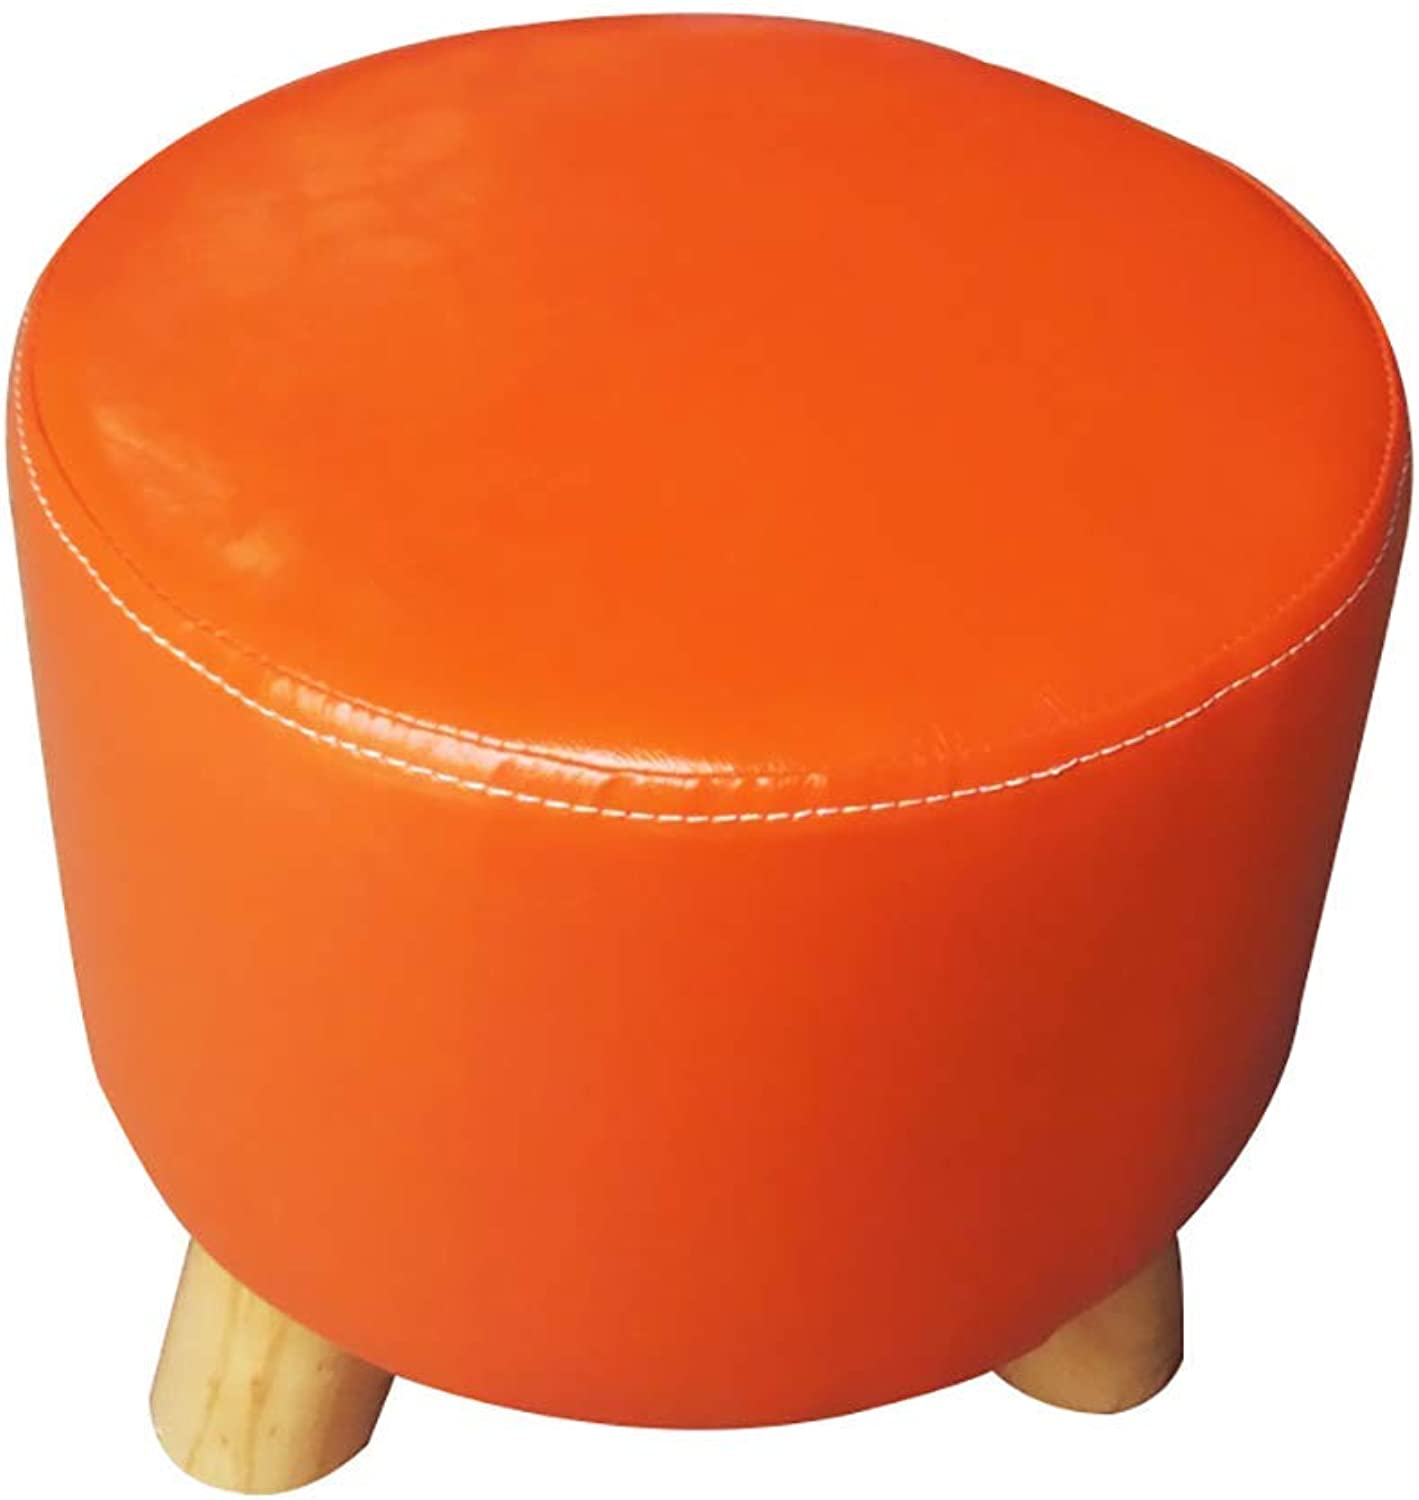 ChenDz Cute Stool Simple Modern Home Change shoes Stool Coffee Table Solid Wood Stool Dressing Room Small pier Living Room PU Leather Sofa Stool (color   orange)